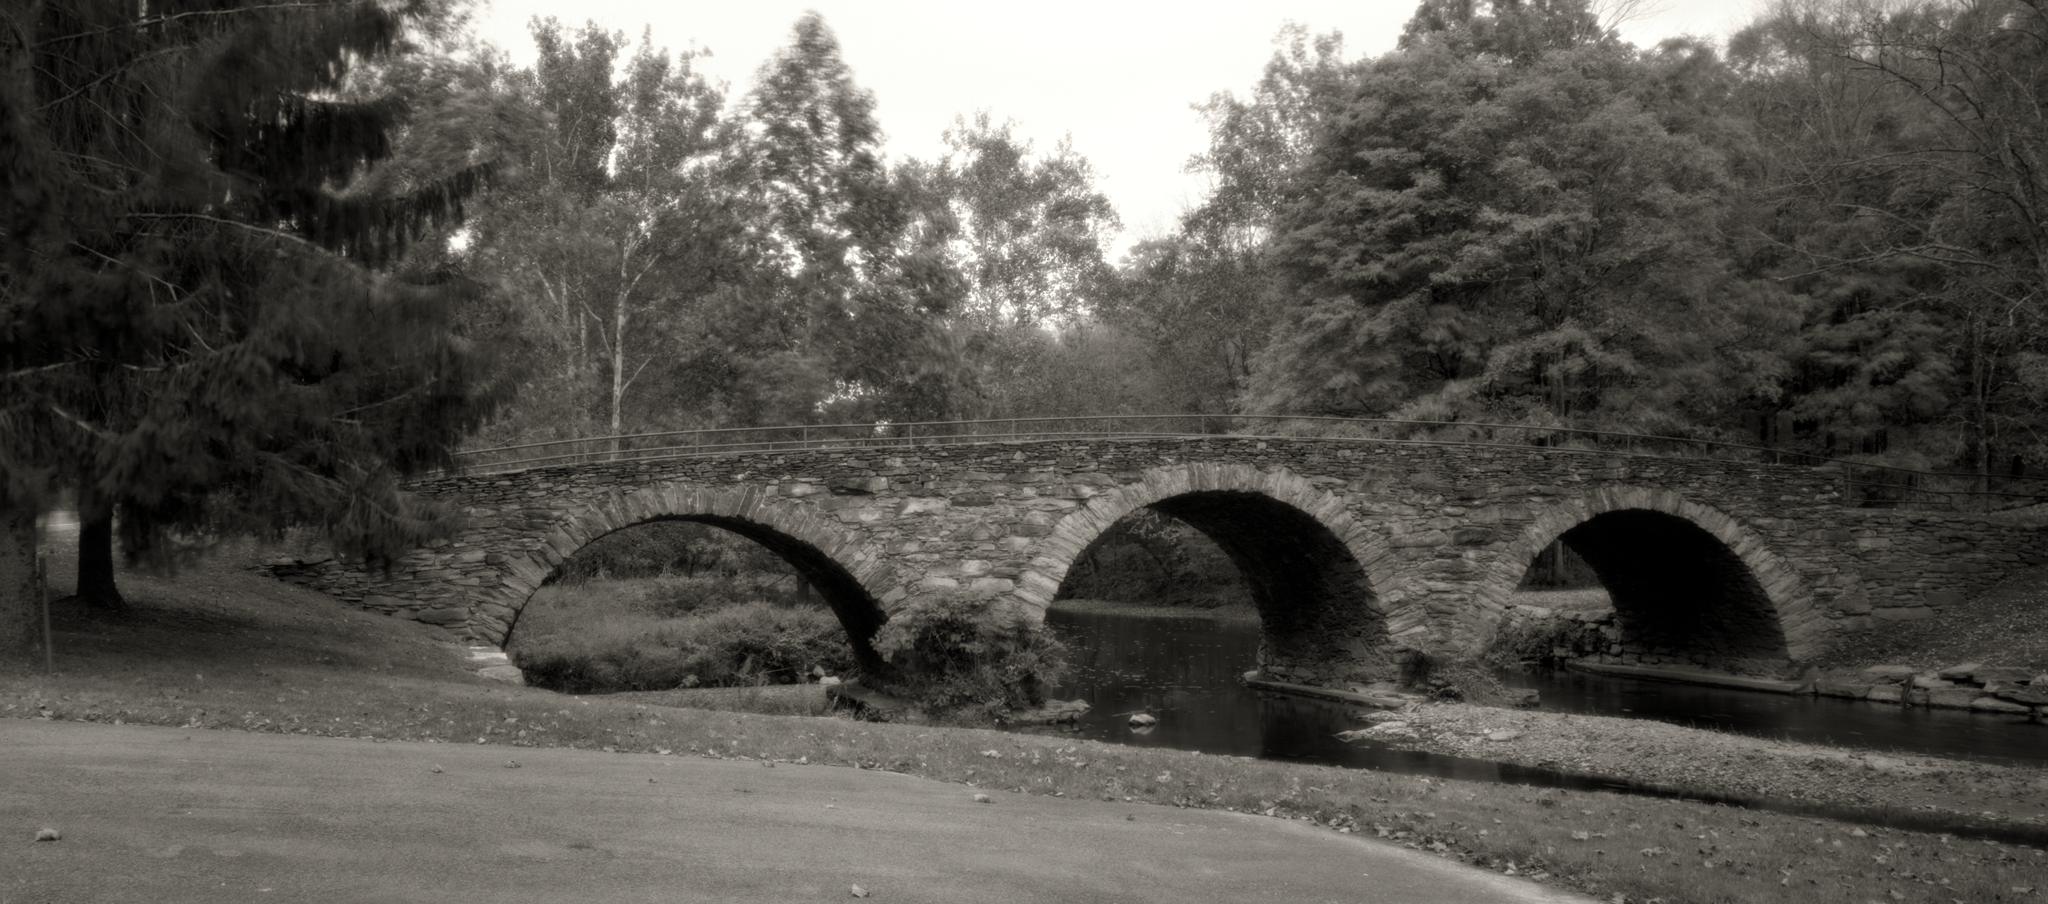 4x5_for_365_project_0282_Stone_Arch_Bridge.png